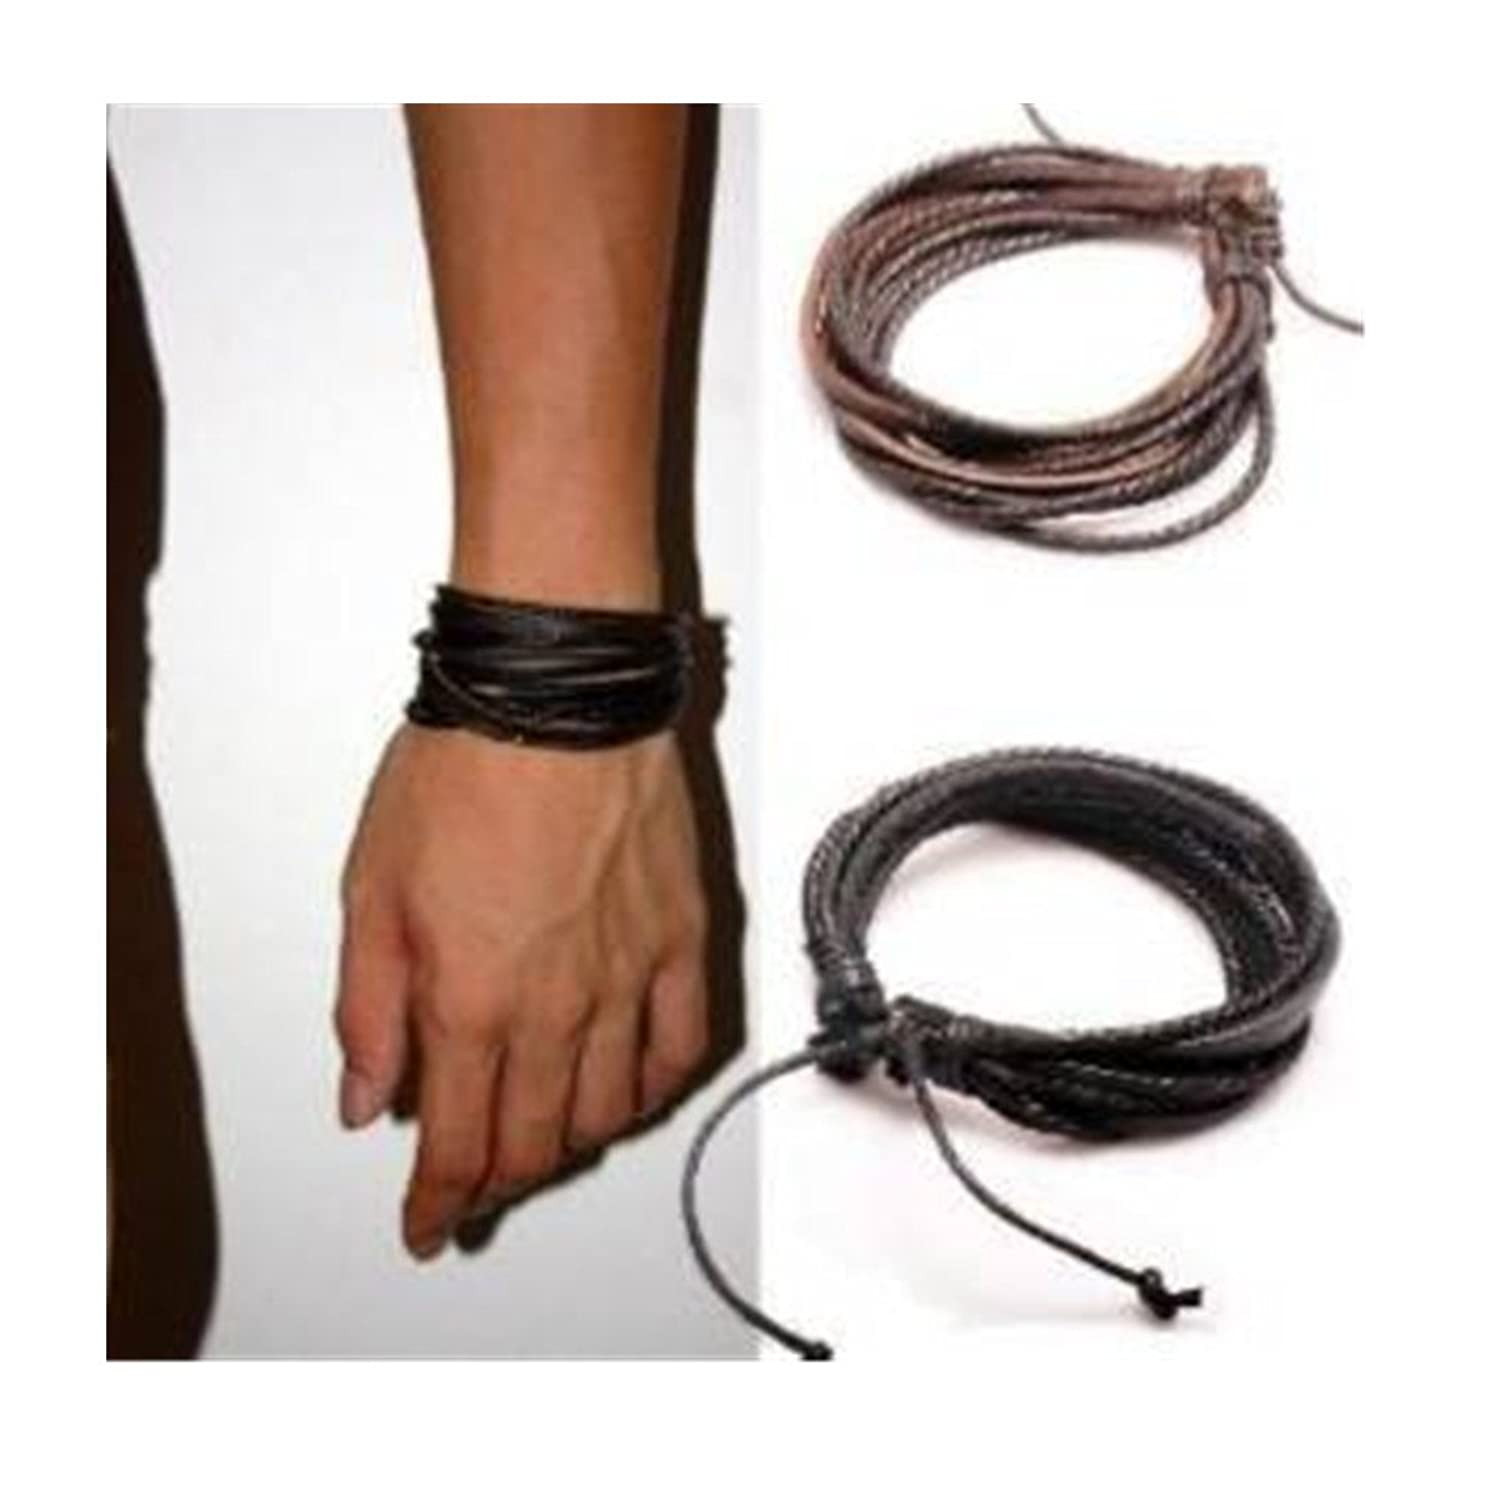 Amazon.com: Coolla Adjustable Black & Brown Leather Wristband and ...